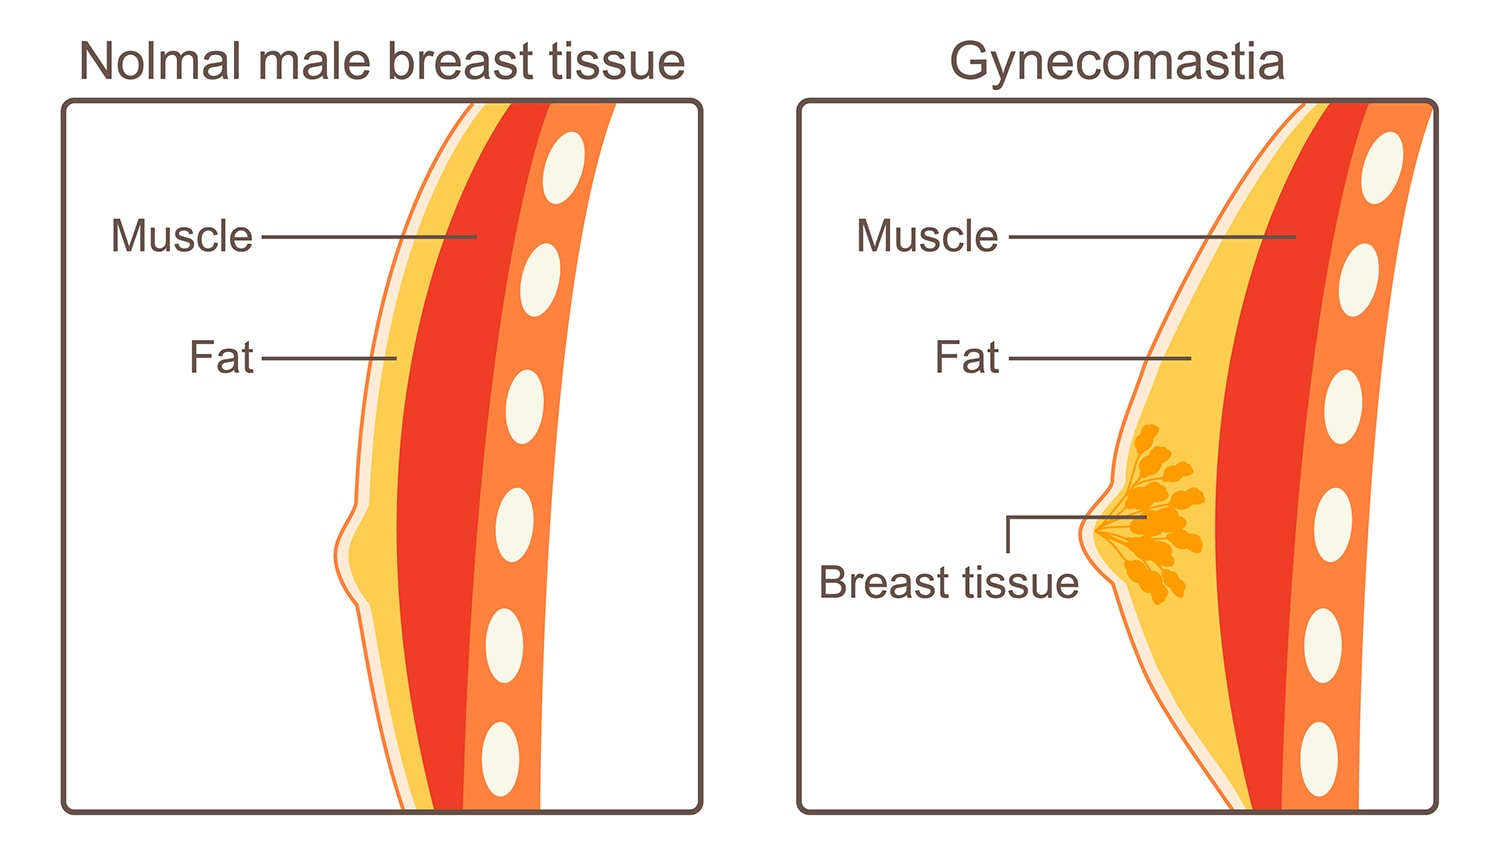 Male normal chest tissue and Gynecomastia